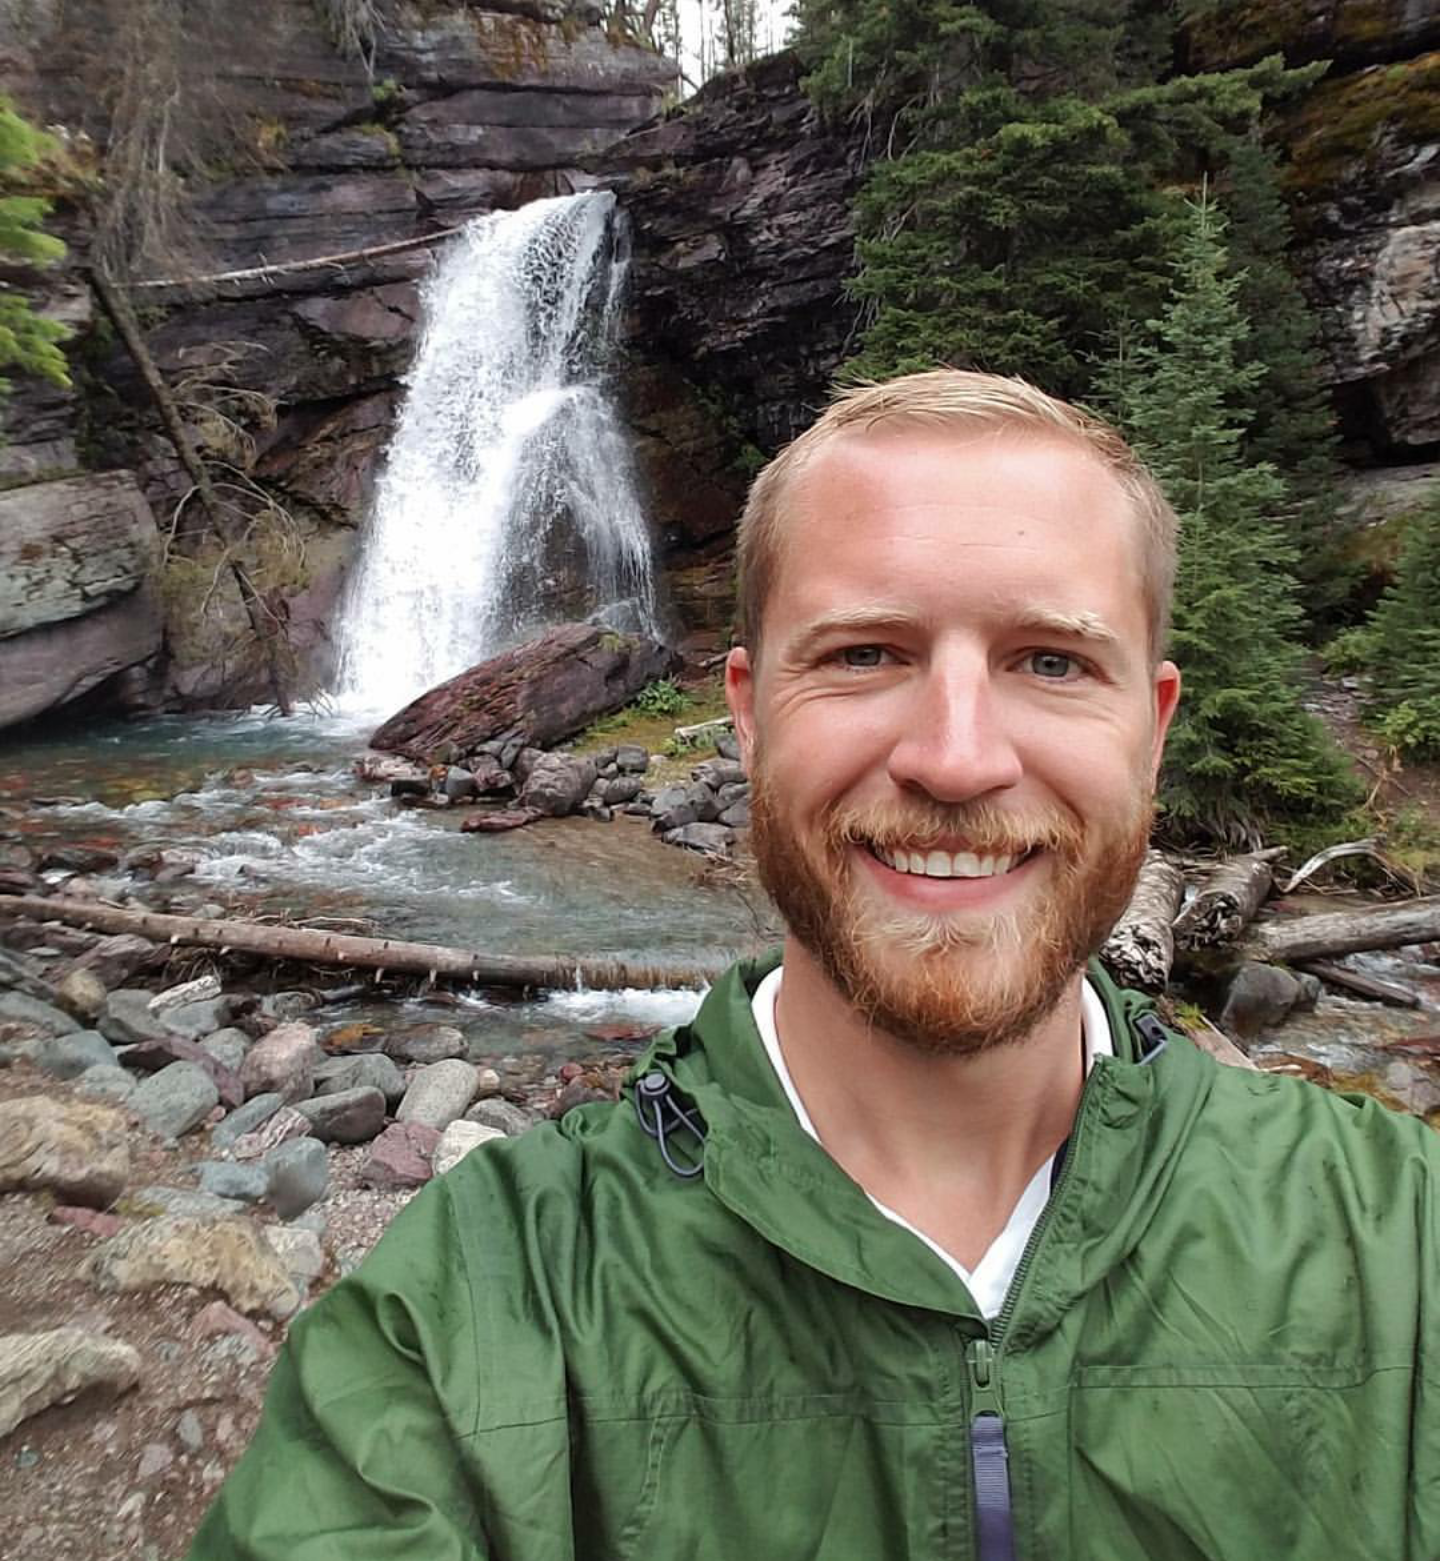 Mark Hedinger in a green jacket in front of a waterfall